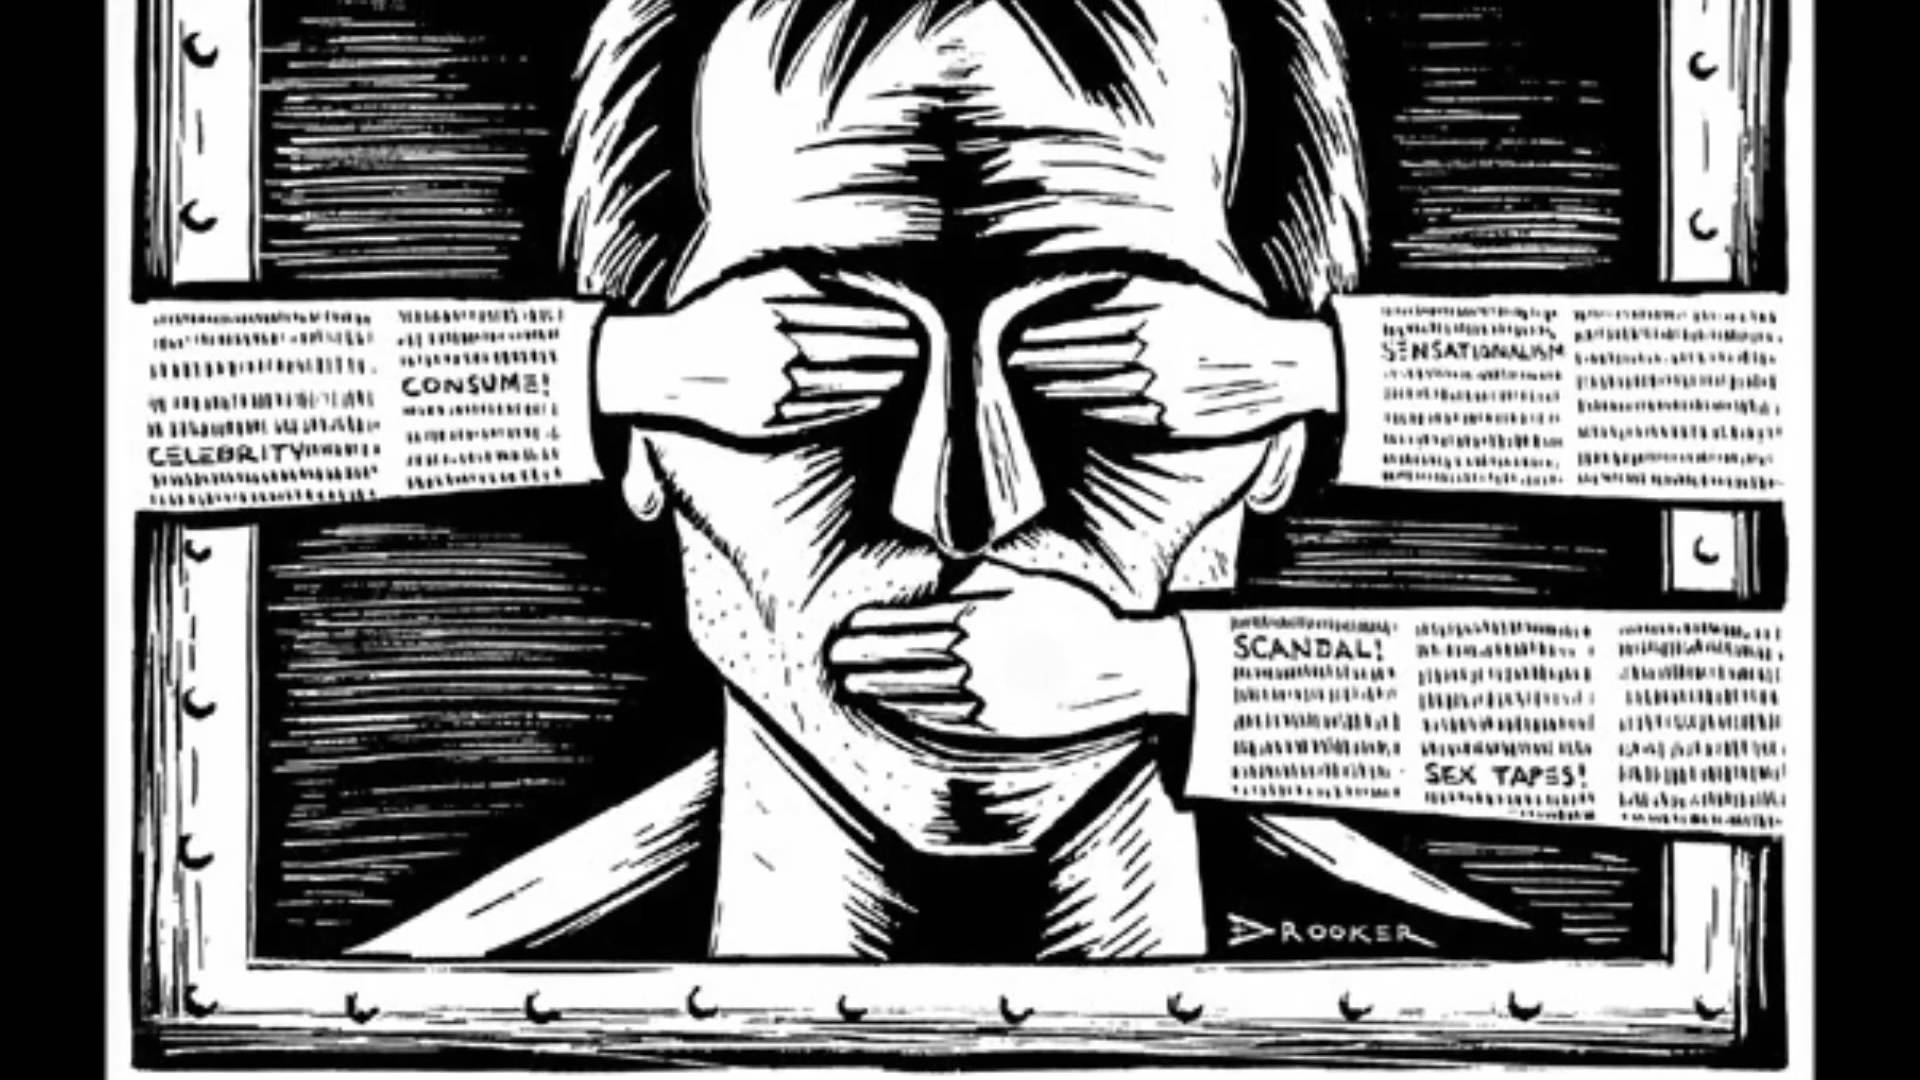 fake news libel and press protections against executive power in